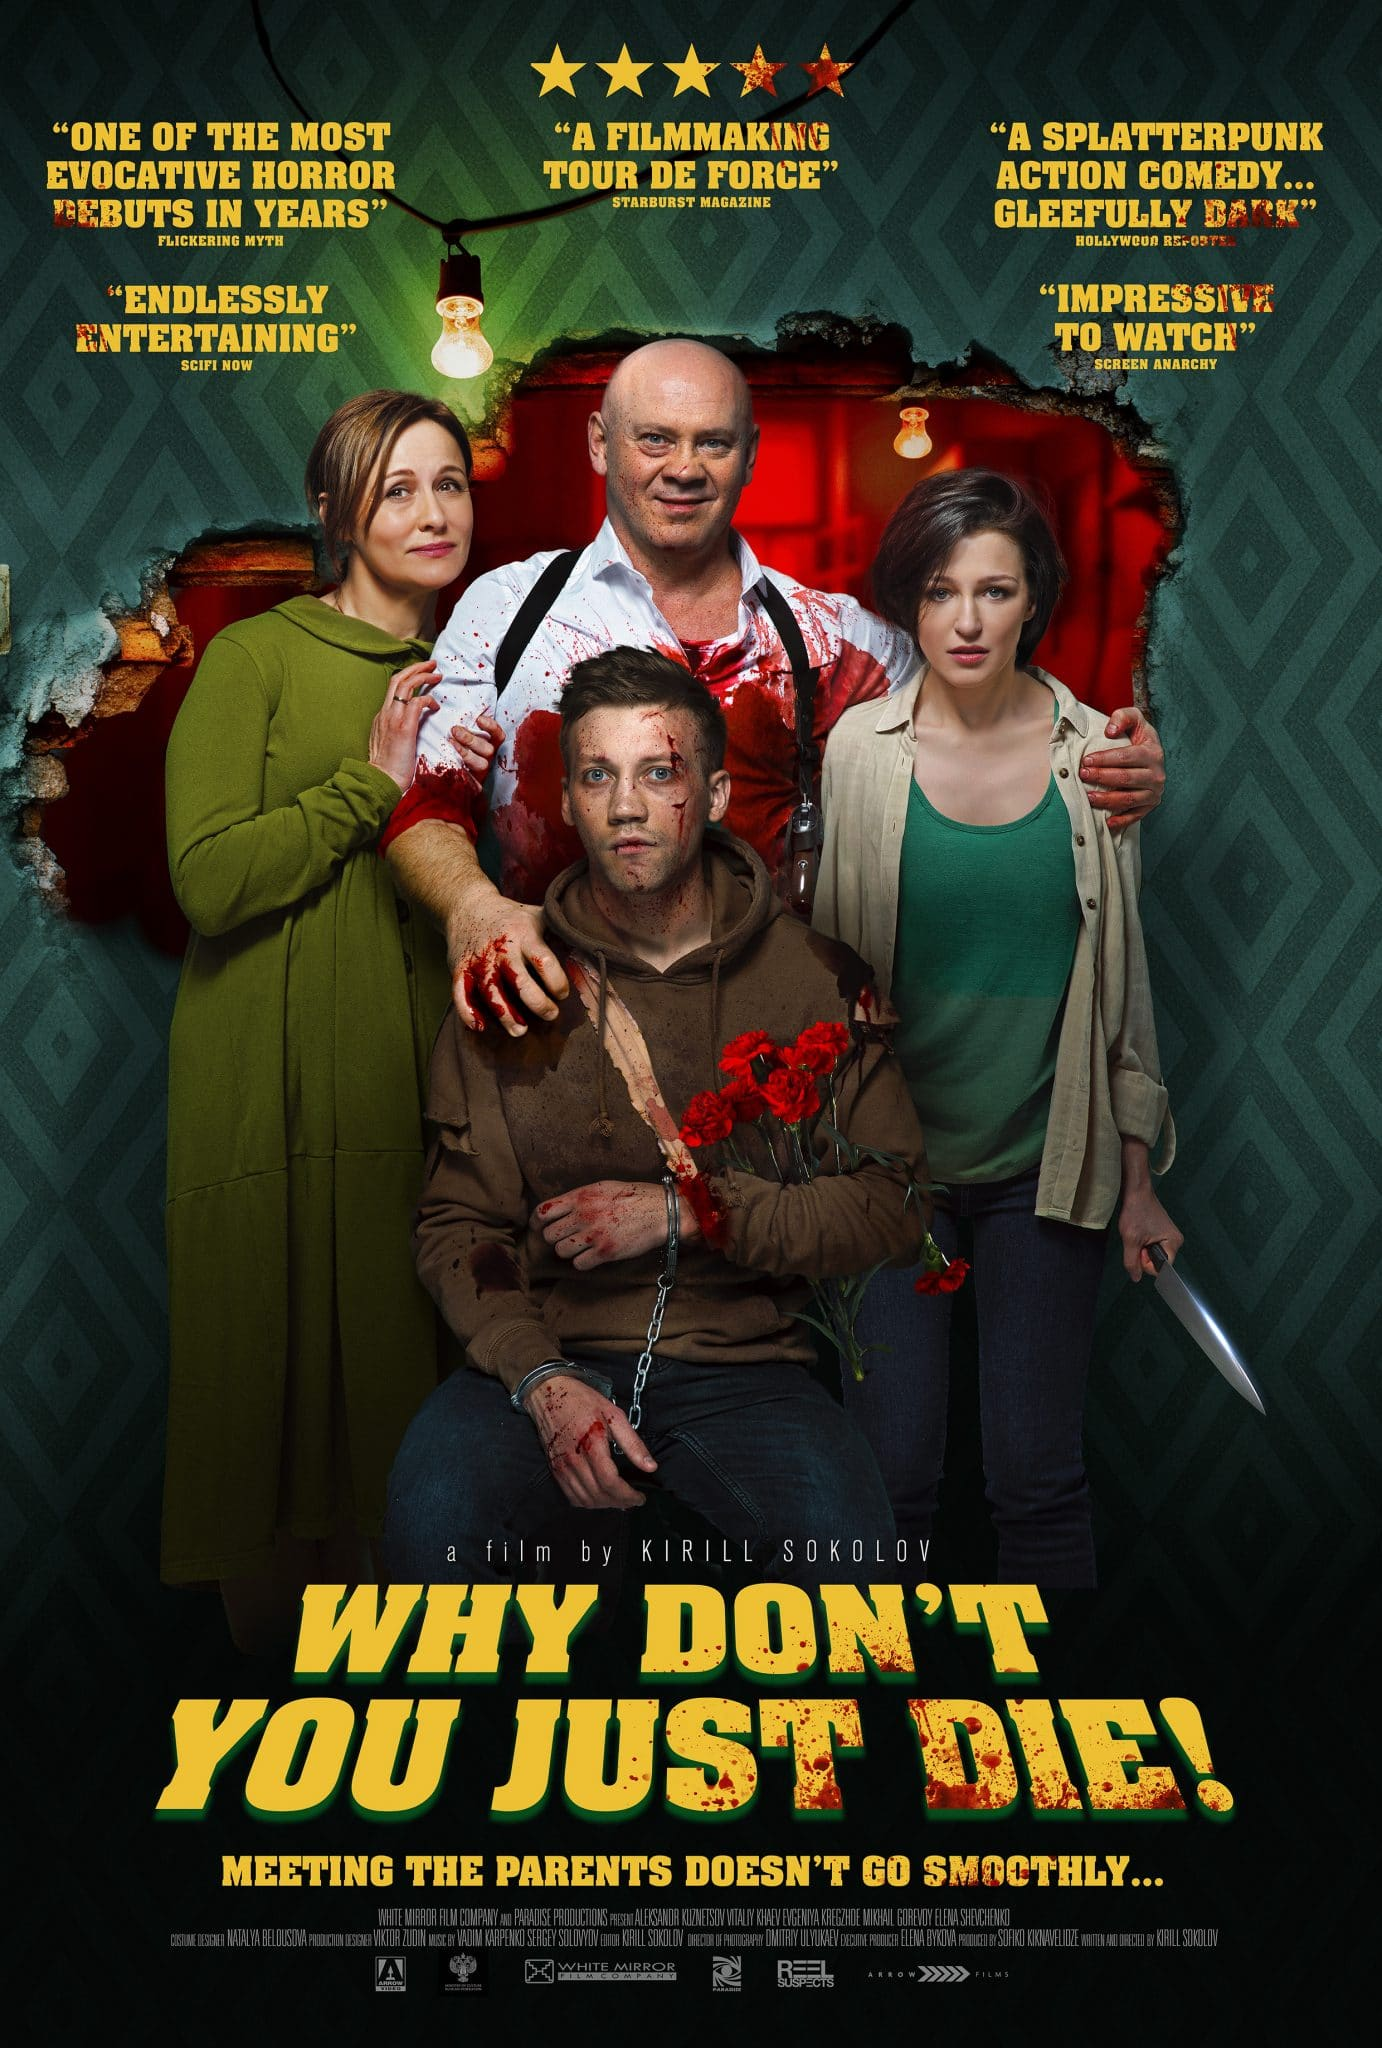 [Review] WHY DON'T YOU JUST DIE! Buries The Hatchet in Family Discord With Rebellious Action